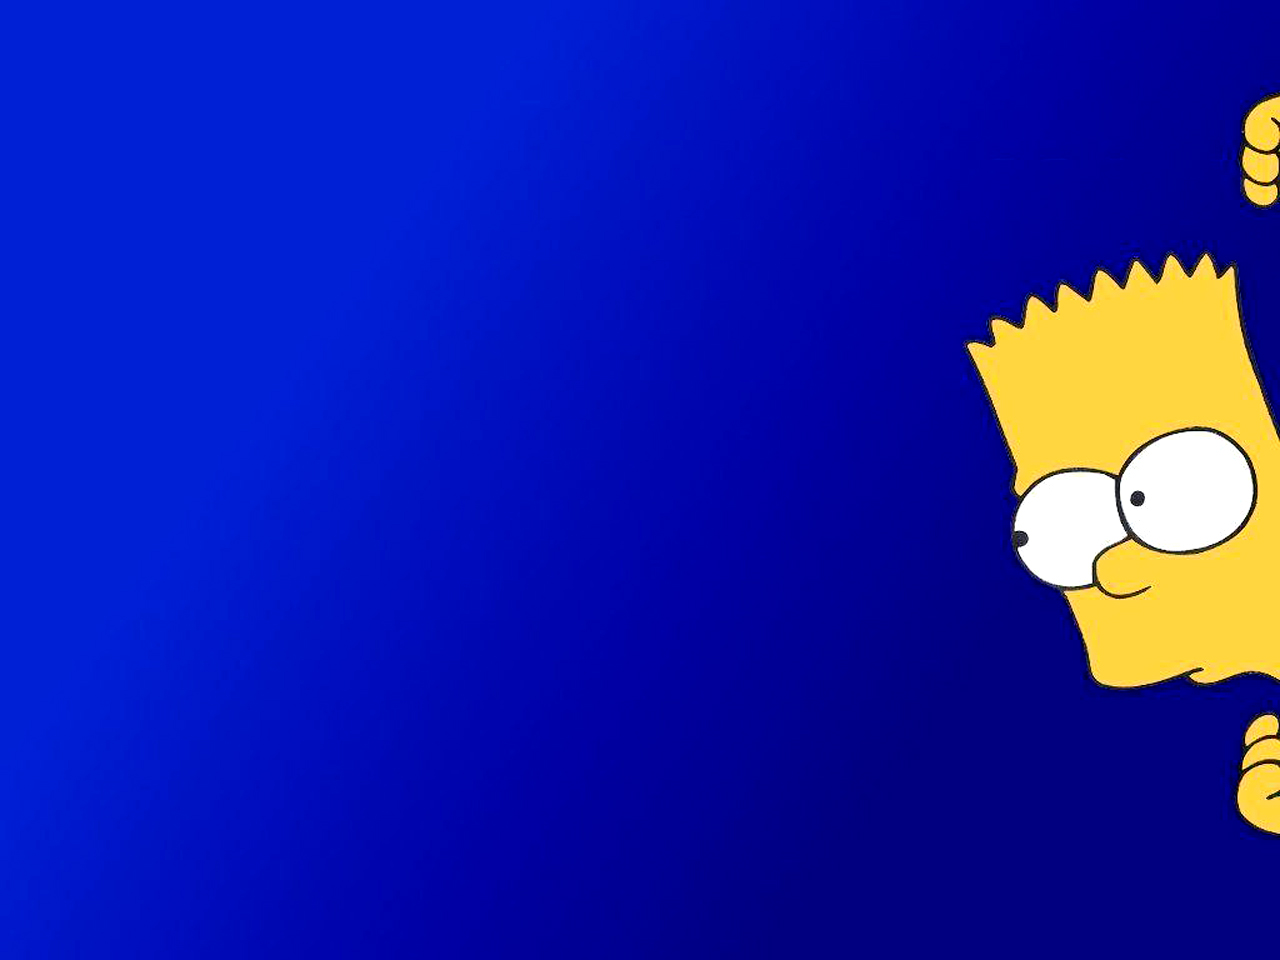 Best 50 Silly Twitter Backgrounds on HipWallpaper Silly 1280x960